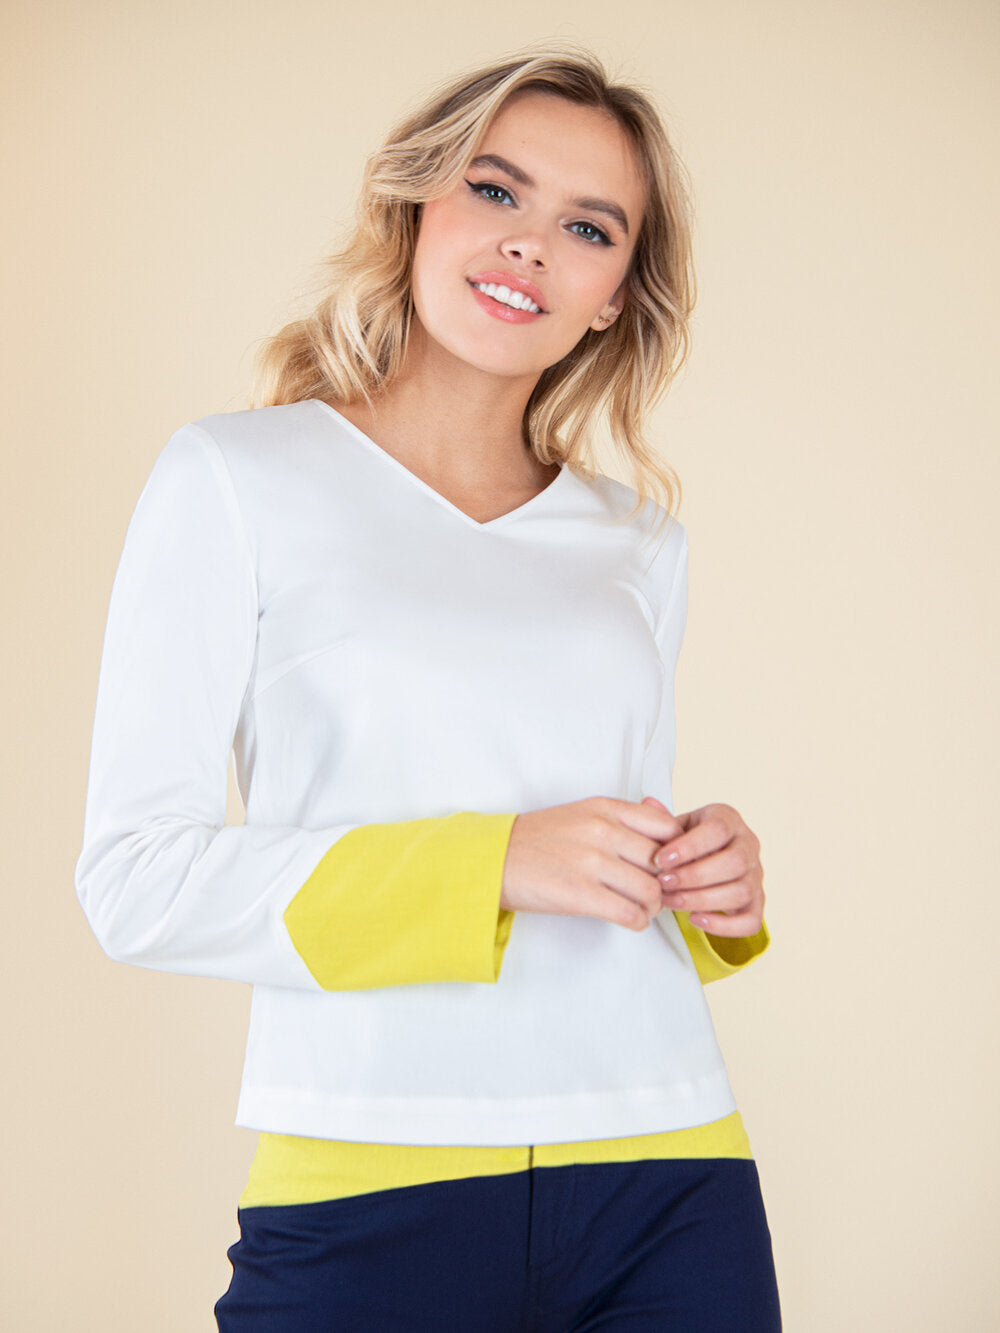 Woman wearing a white blouse with bright yellow elements on the sleeves